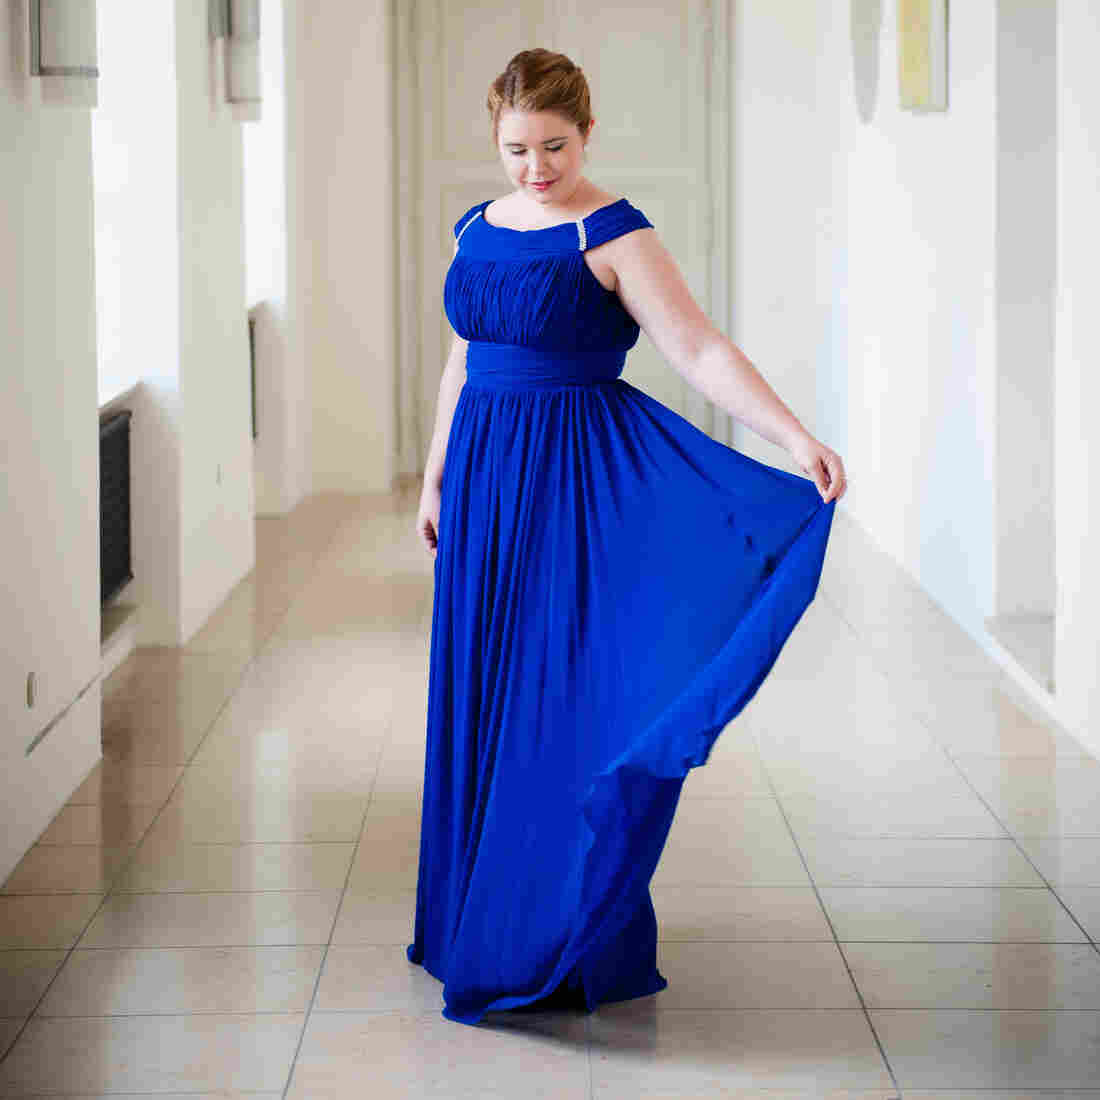 In 2014, The Classical World Still Can't Stop Fat-Shaming Women